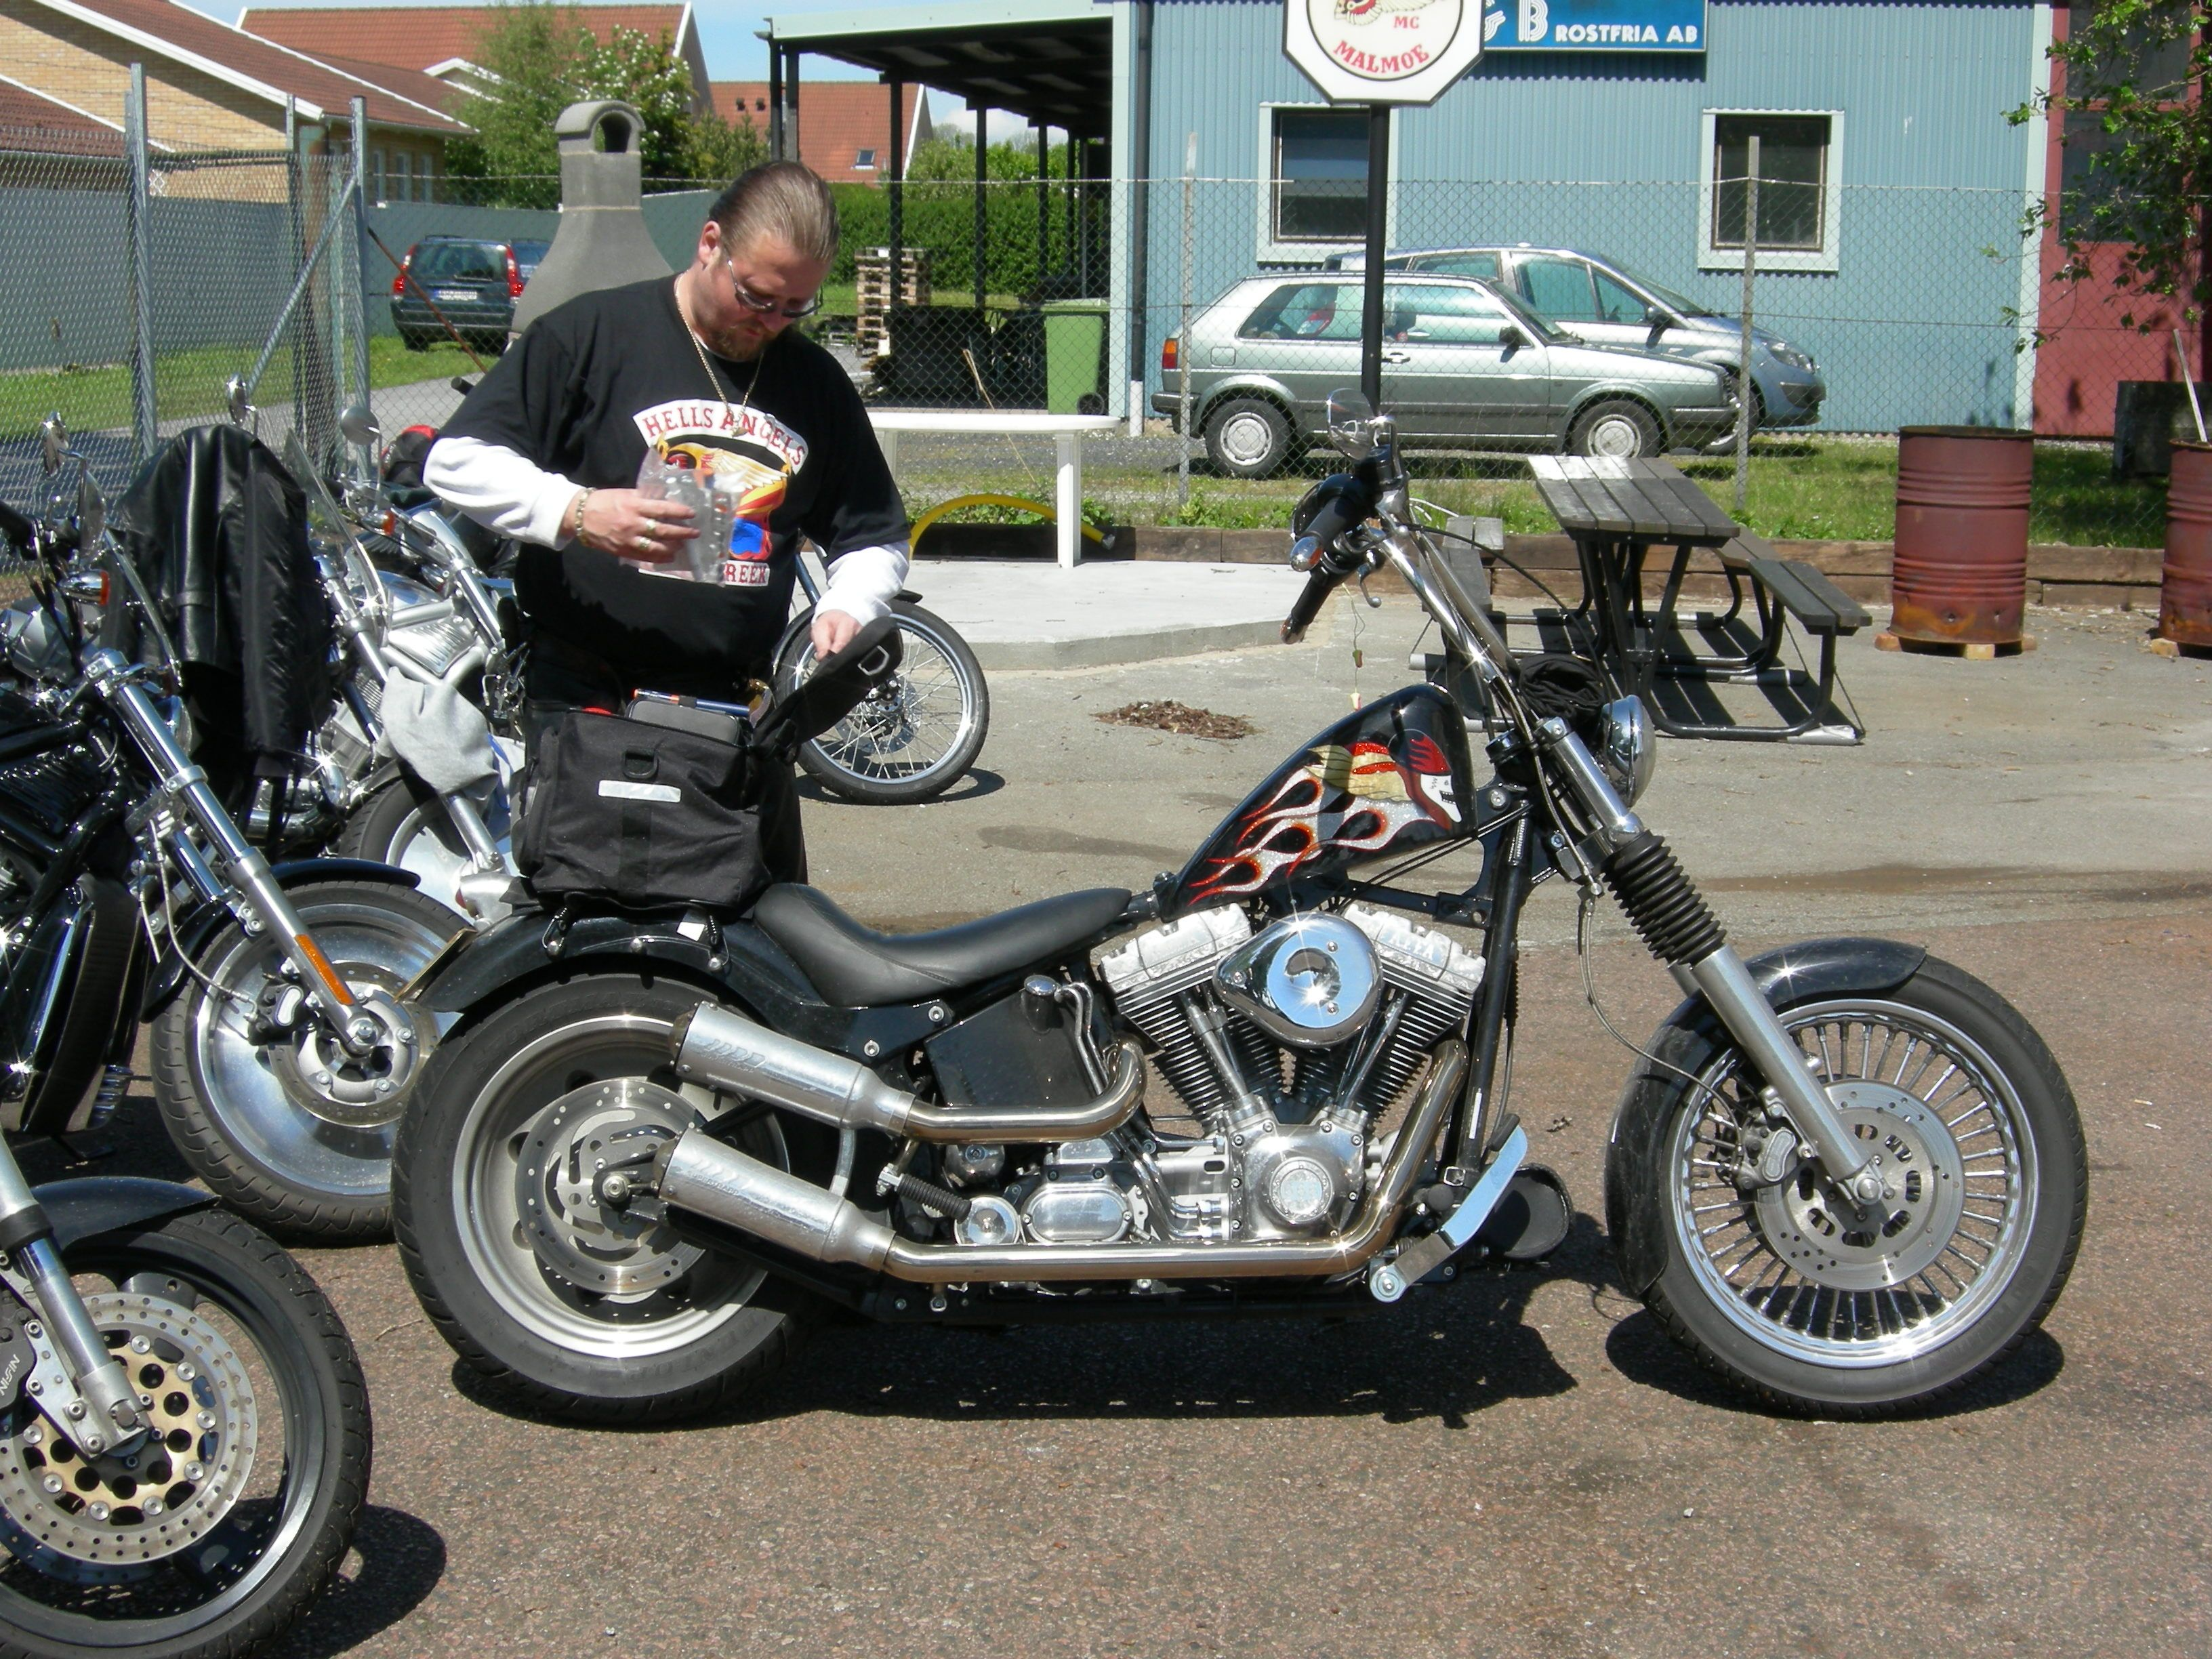 Pin by Rick Ashwood on 81 Support | Motorcycle, Hells angels